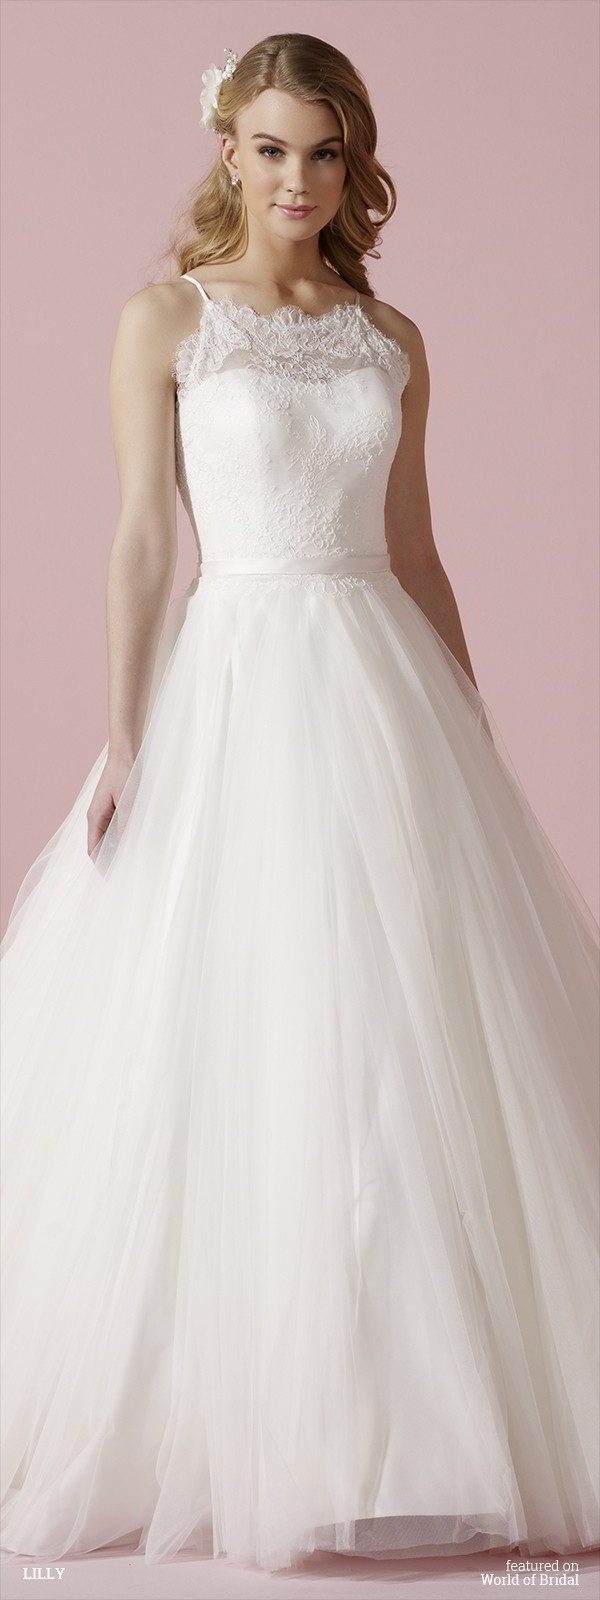 lilly wedding dresses wedding dresses LILLY Wedding Dress